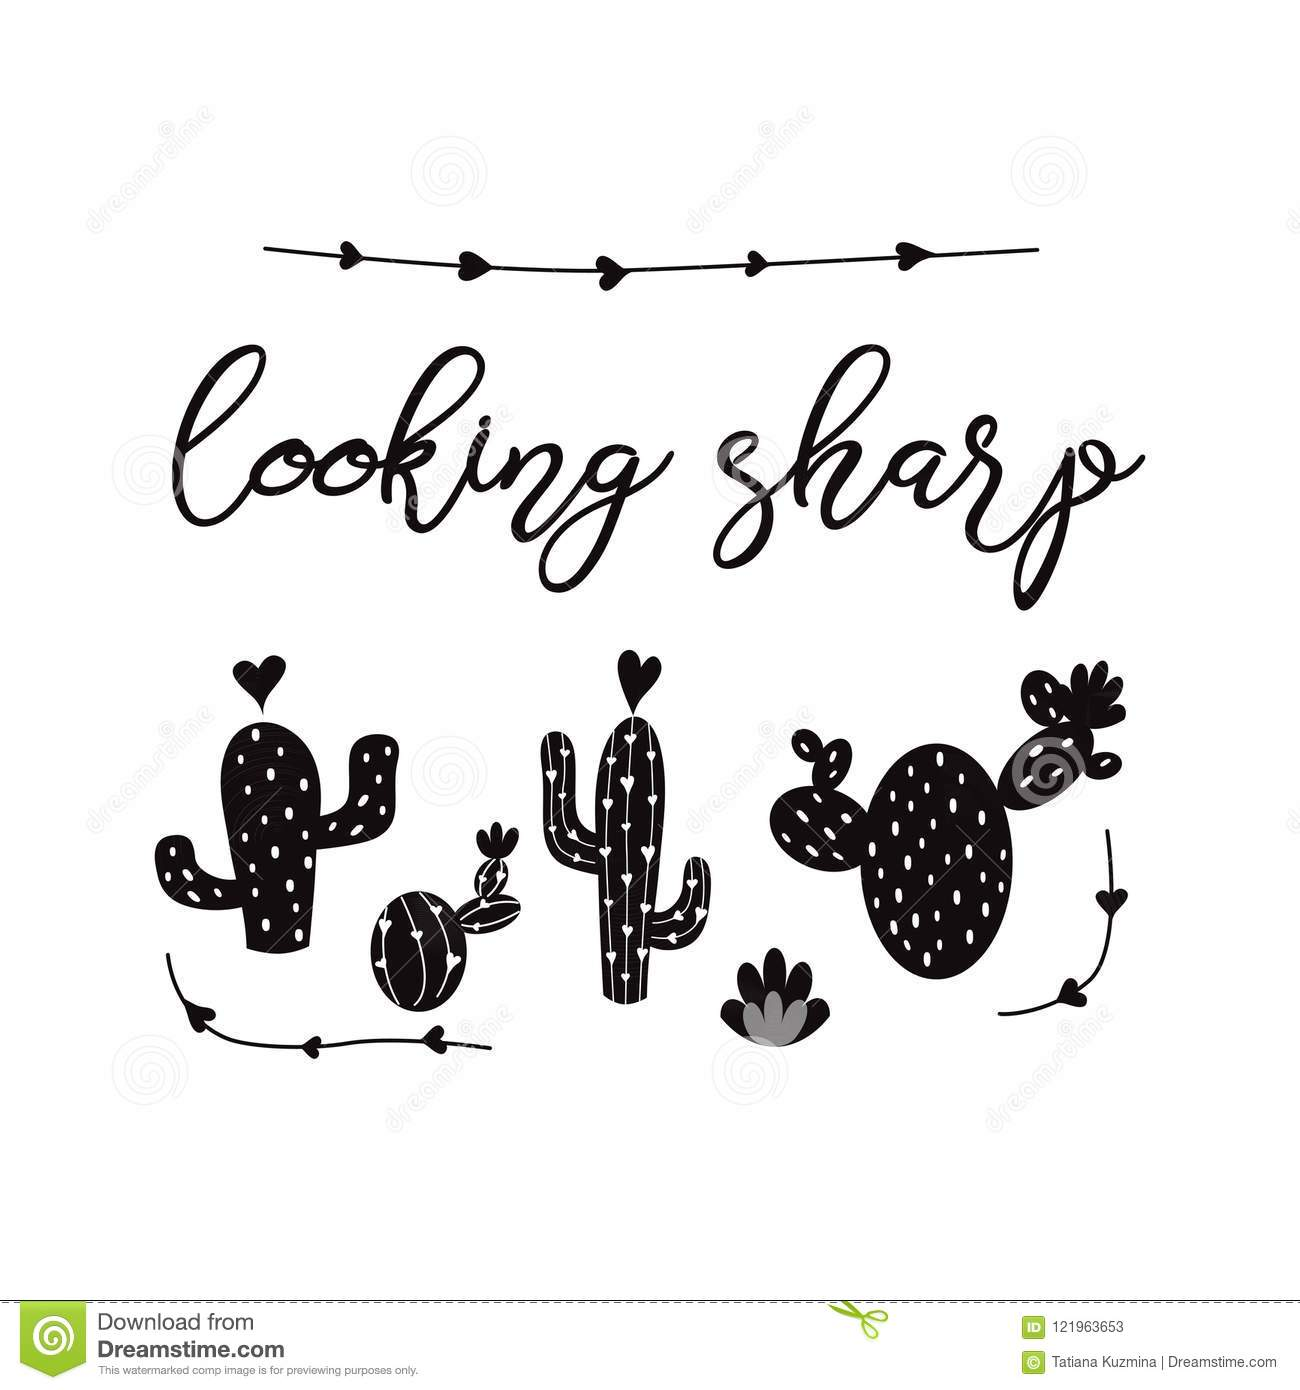 Looking sharp vector card. Cute hand drawn Prickly cactus print with inspirational quote шт black color